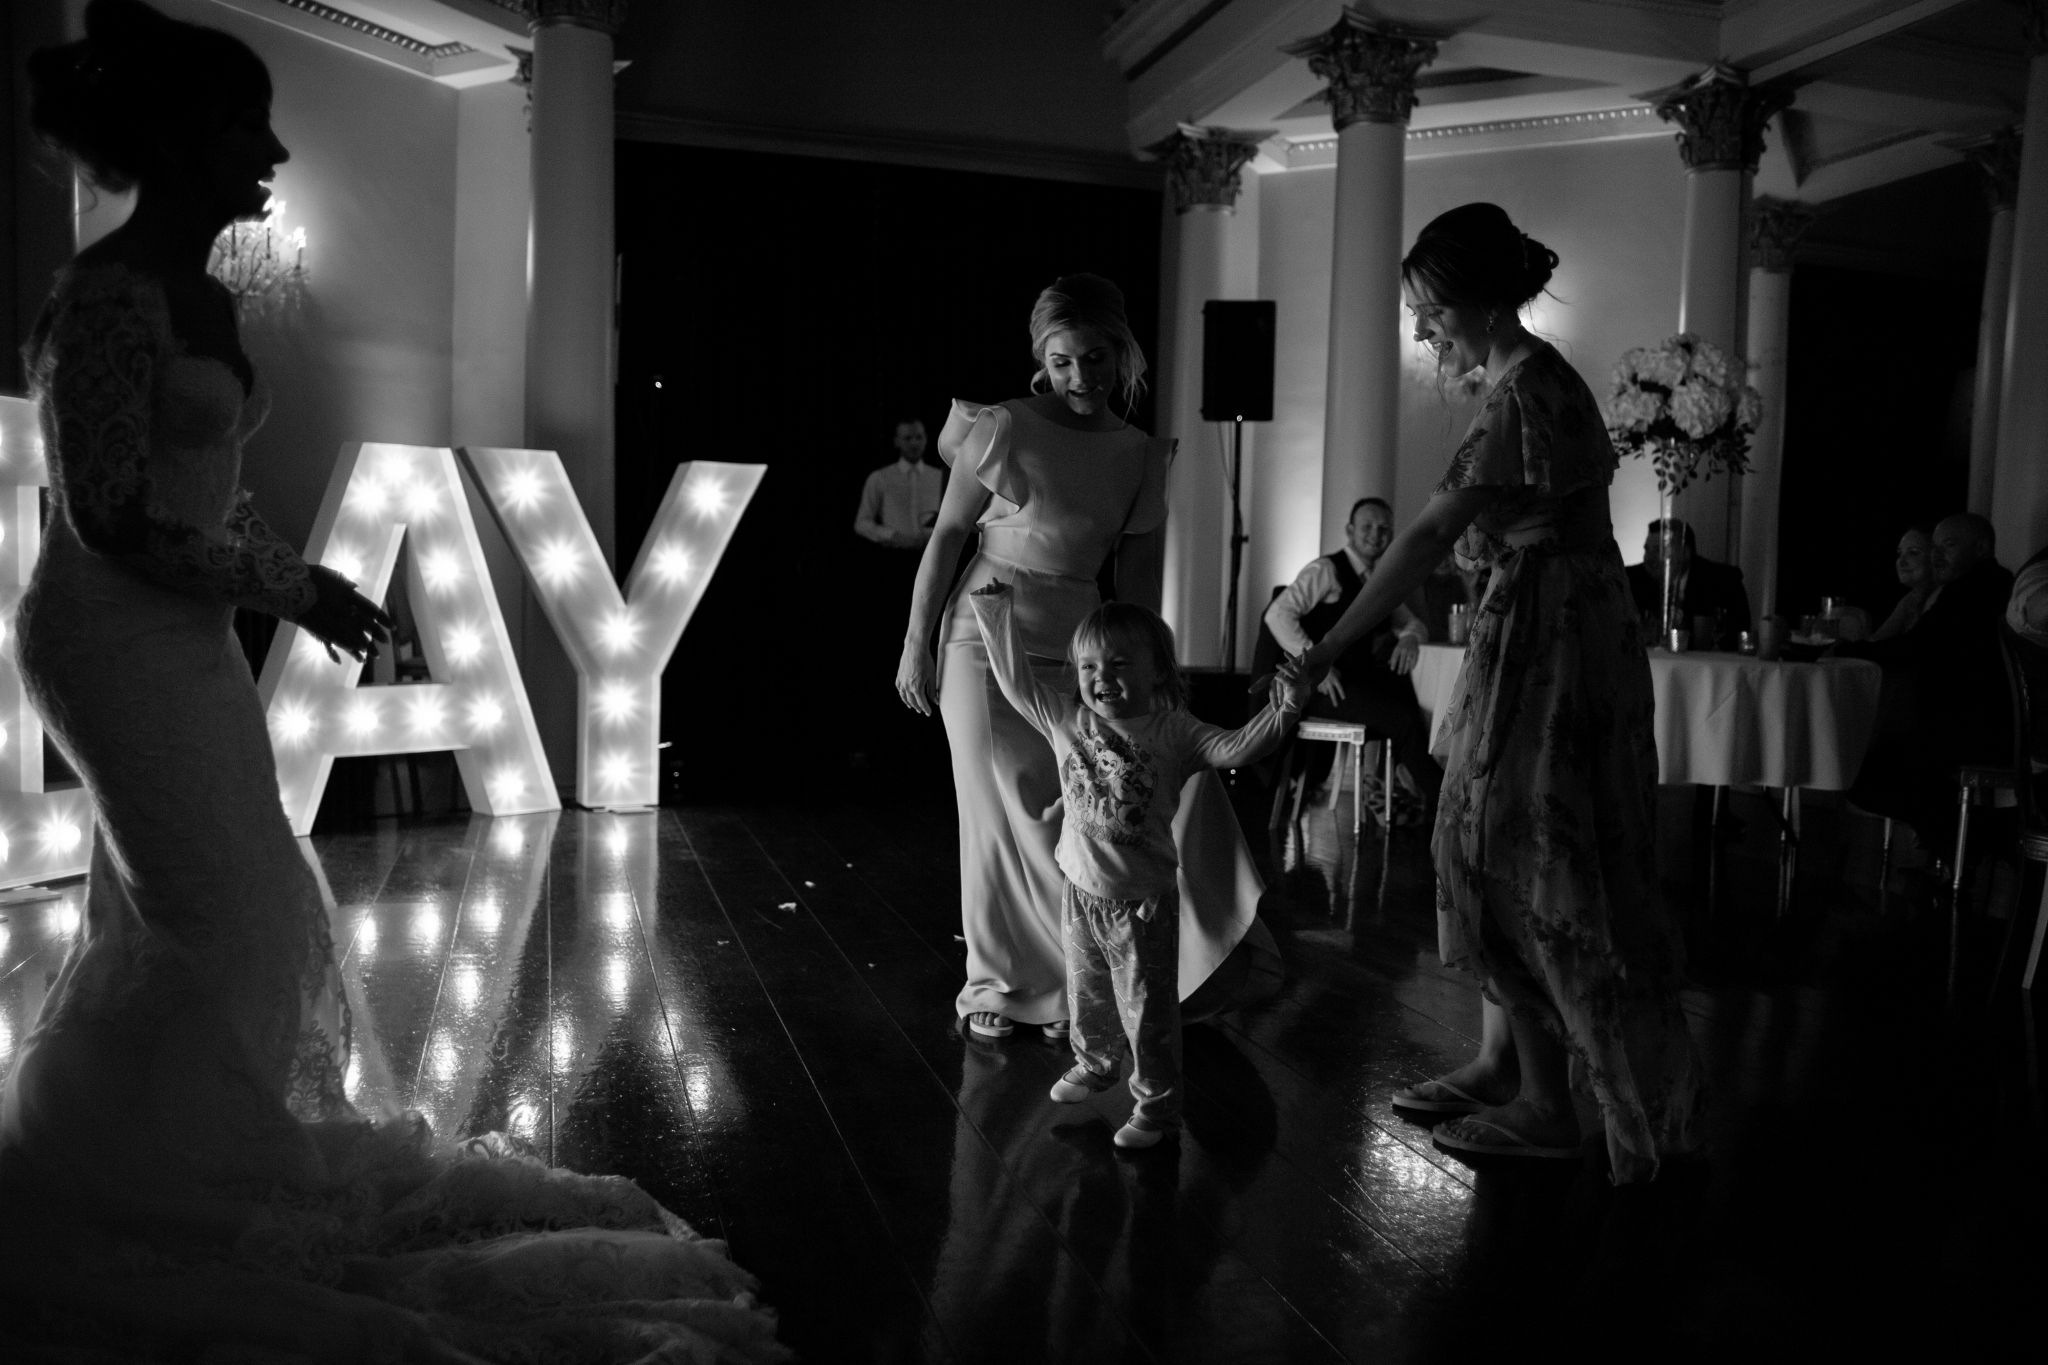 hannah layford wedding photography wedding party evening event claire and glenn child dancing